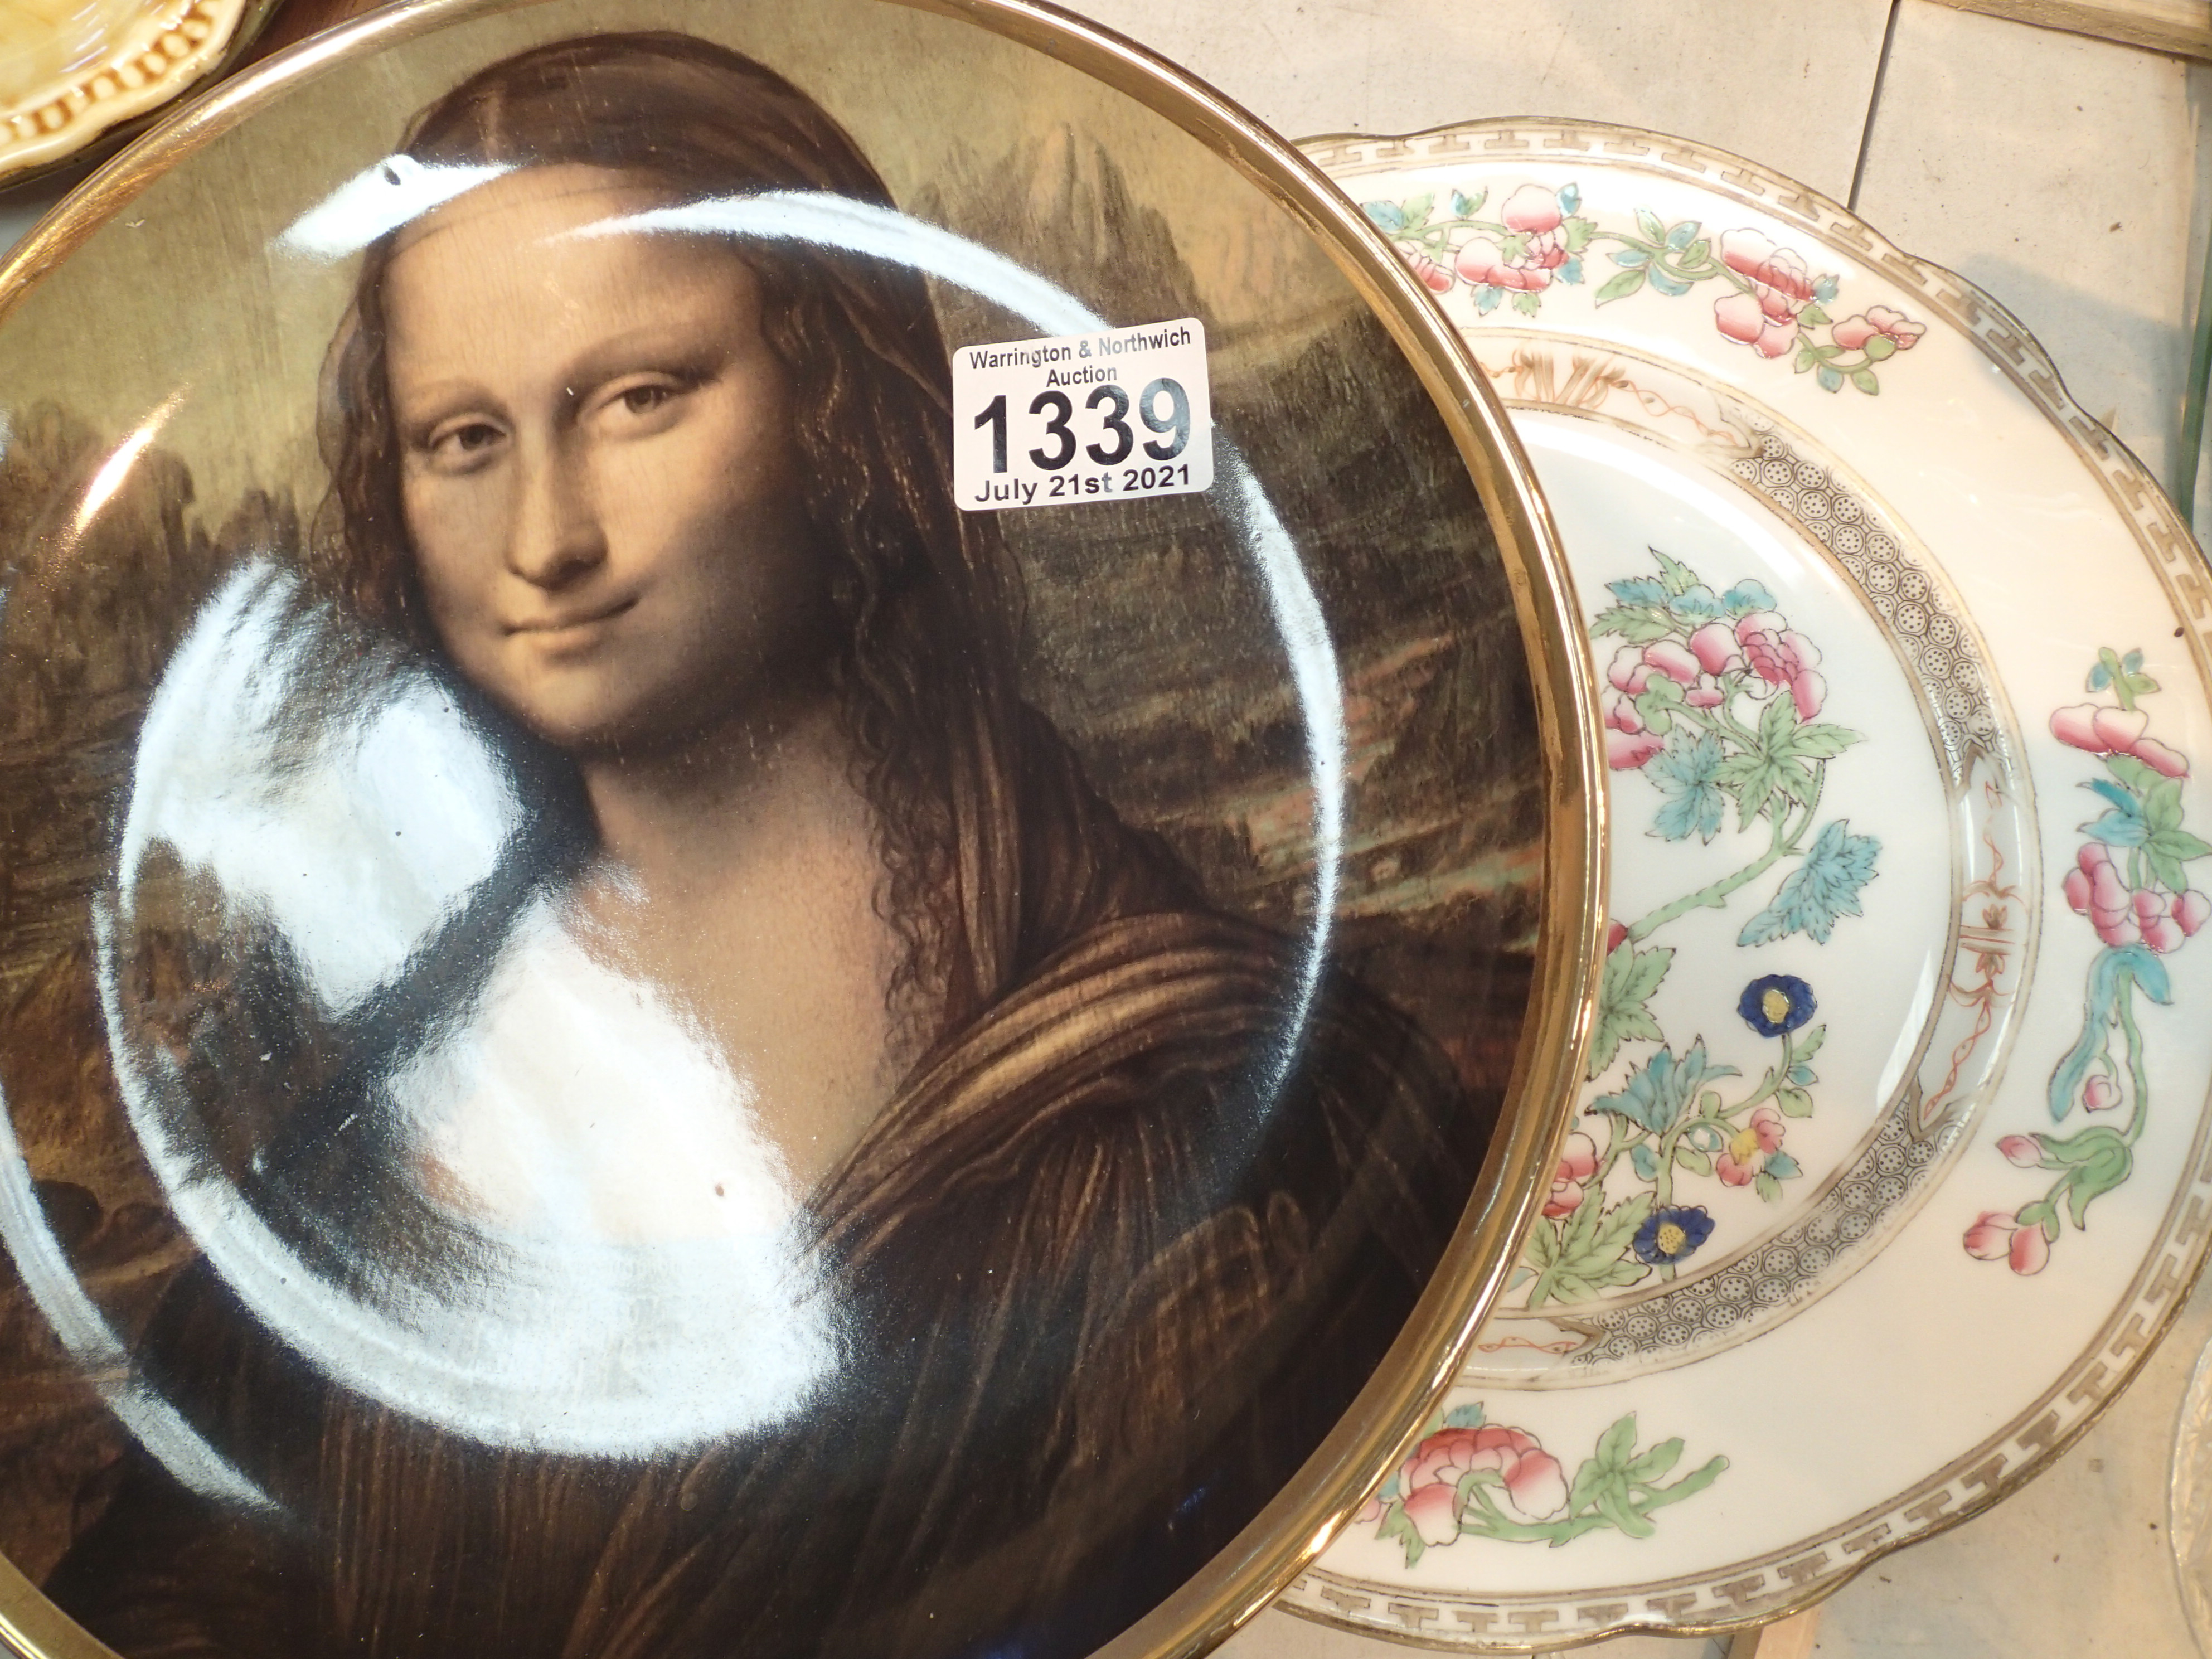 Mona Lisa plate and another. Not available for in-house P&P, contact Paul O'Hea at Mailboxes on